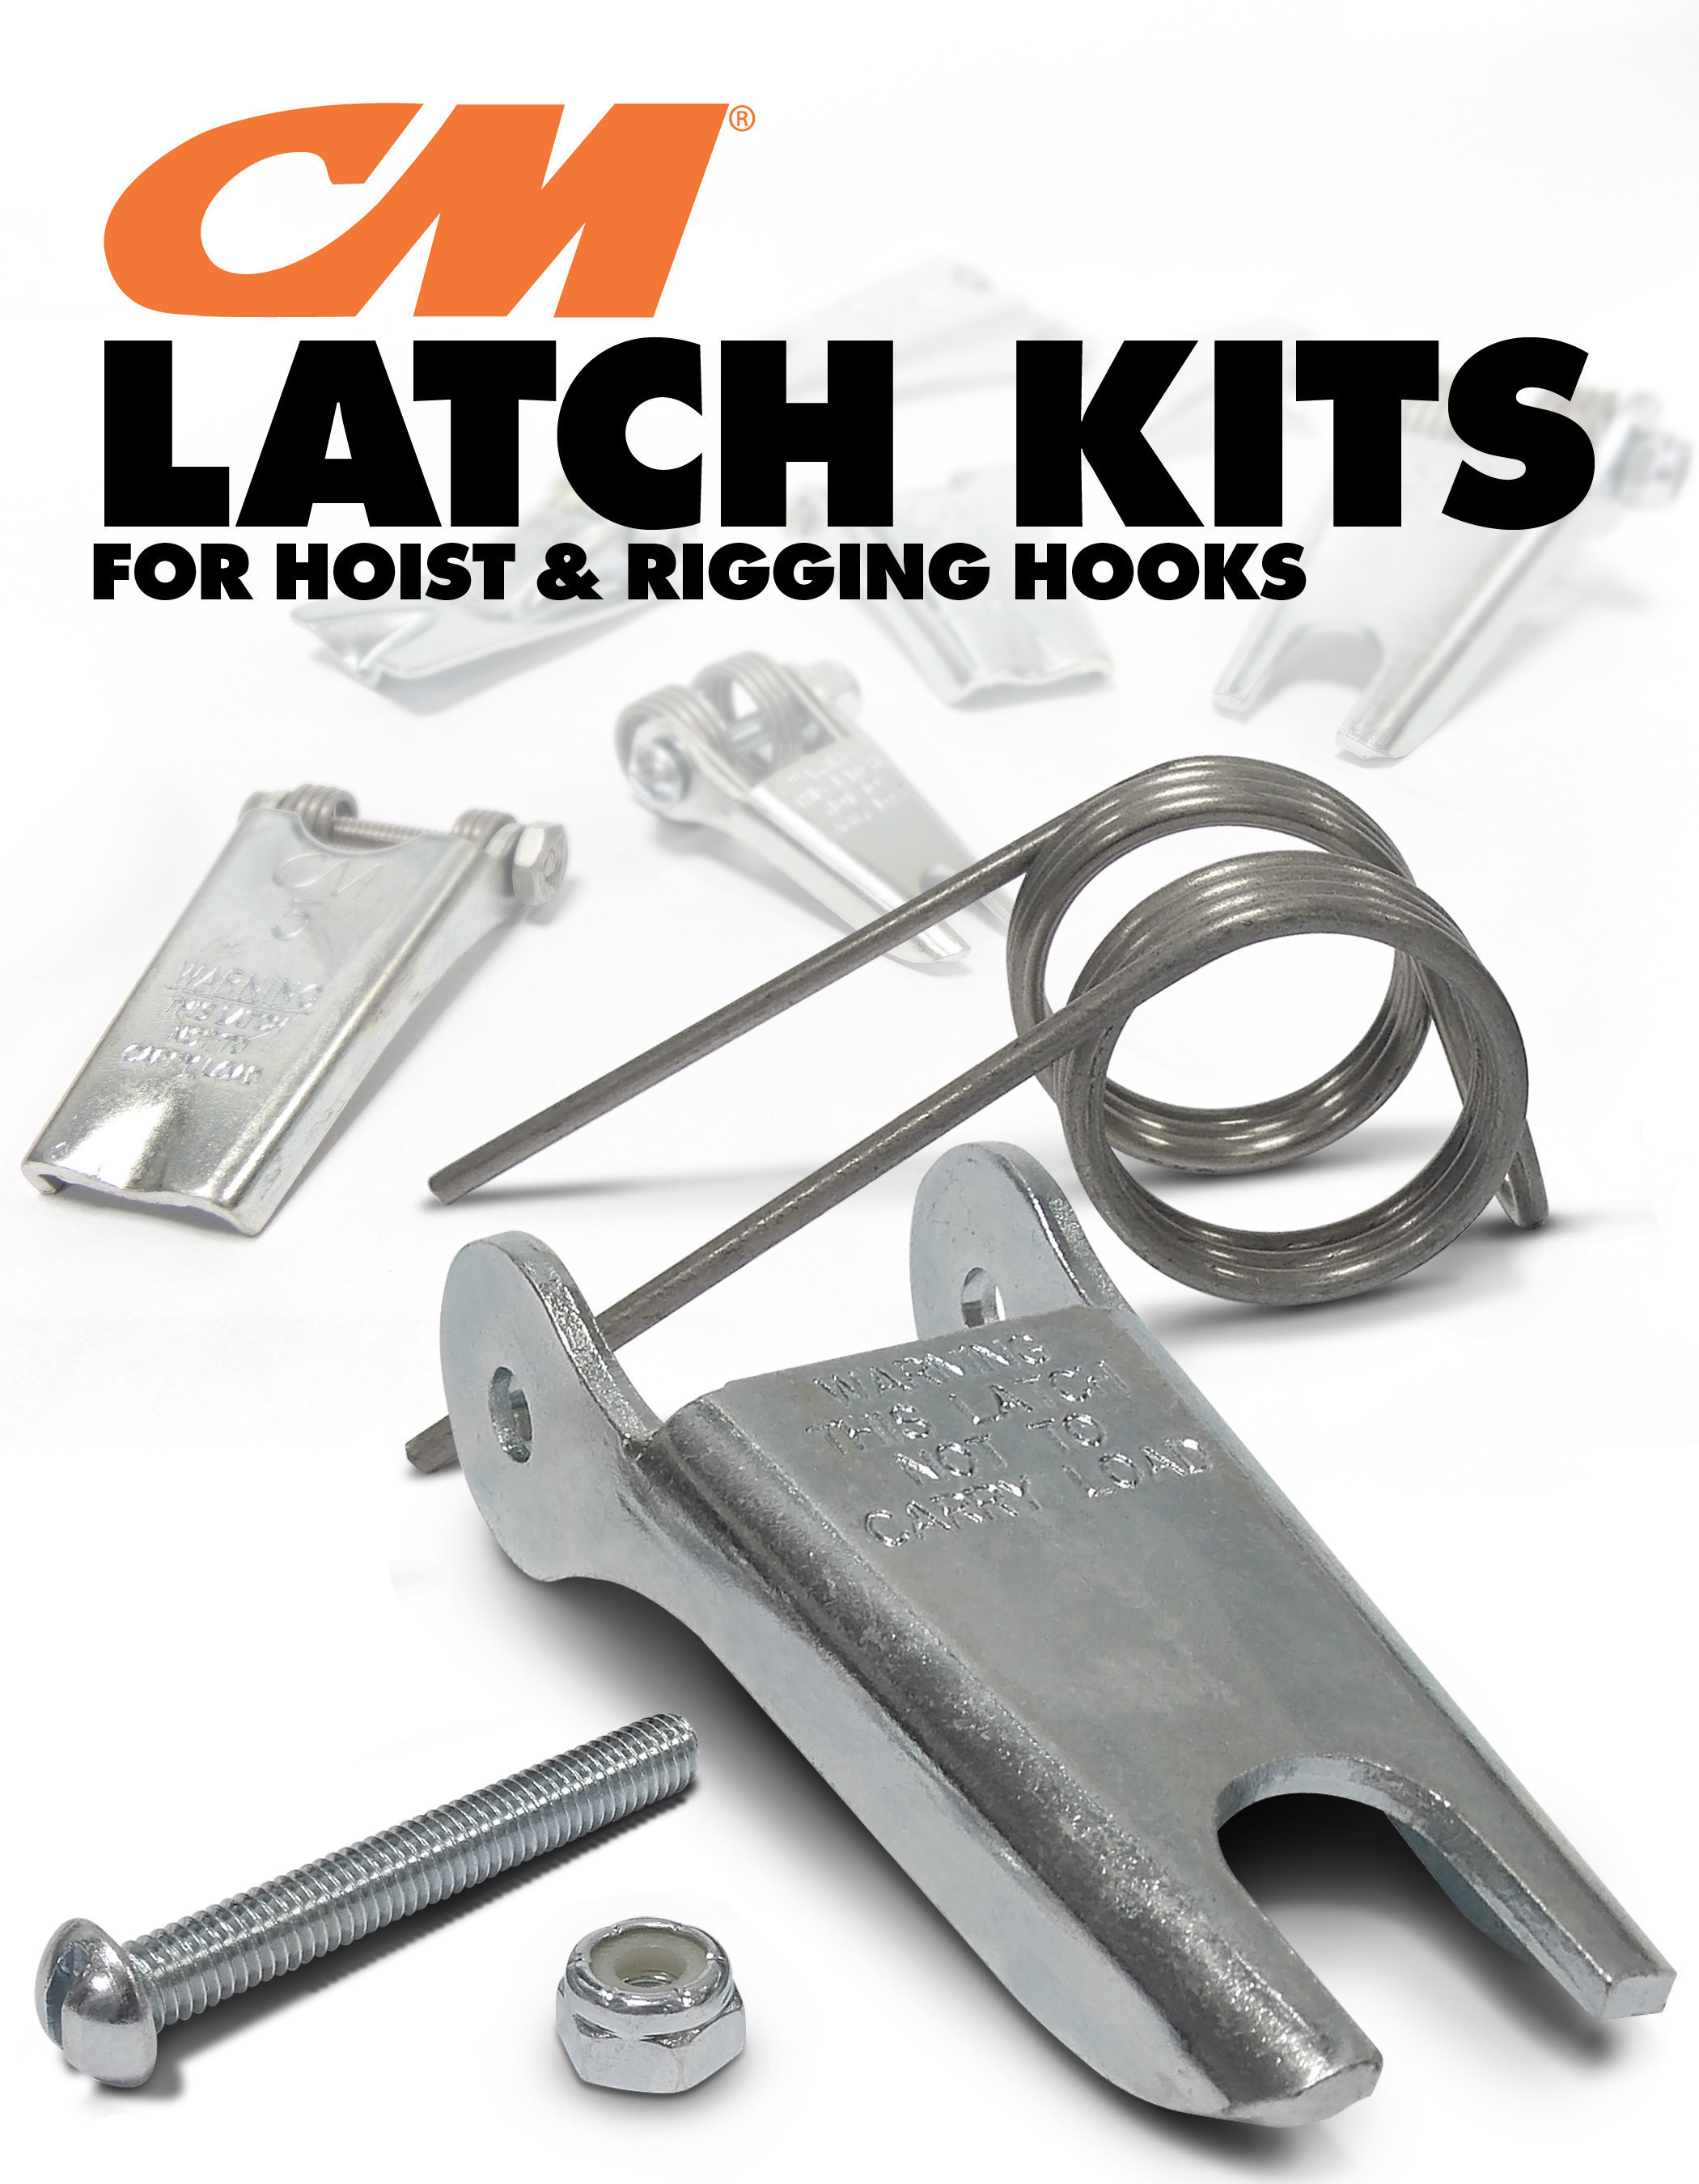 CM Latch Kits for Hoist and Rigging Hooks Now Available in Easy-to